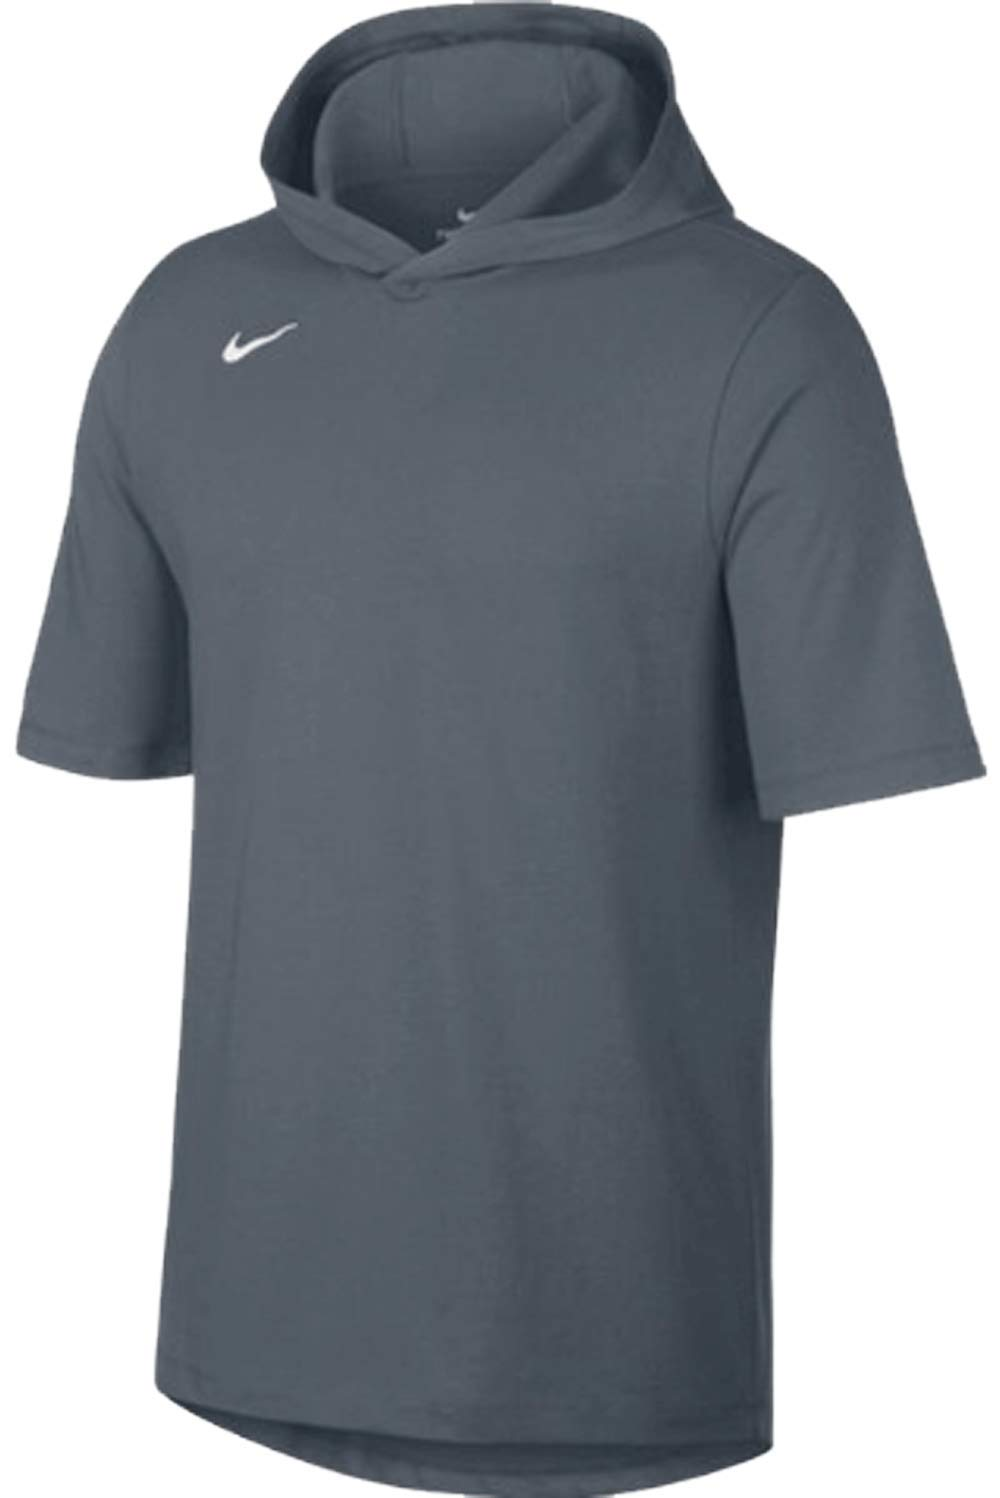 Nike Mens Hooded Players Tee Team Cool Grey/Black Size XL by Nike